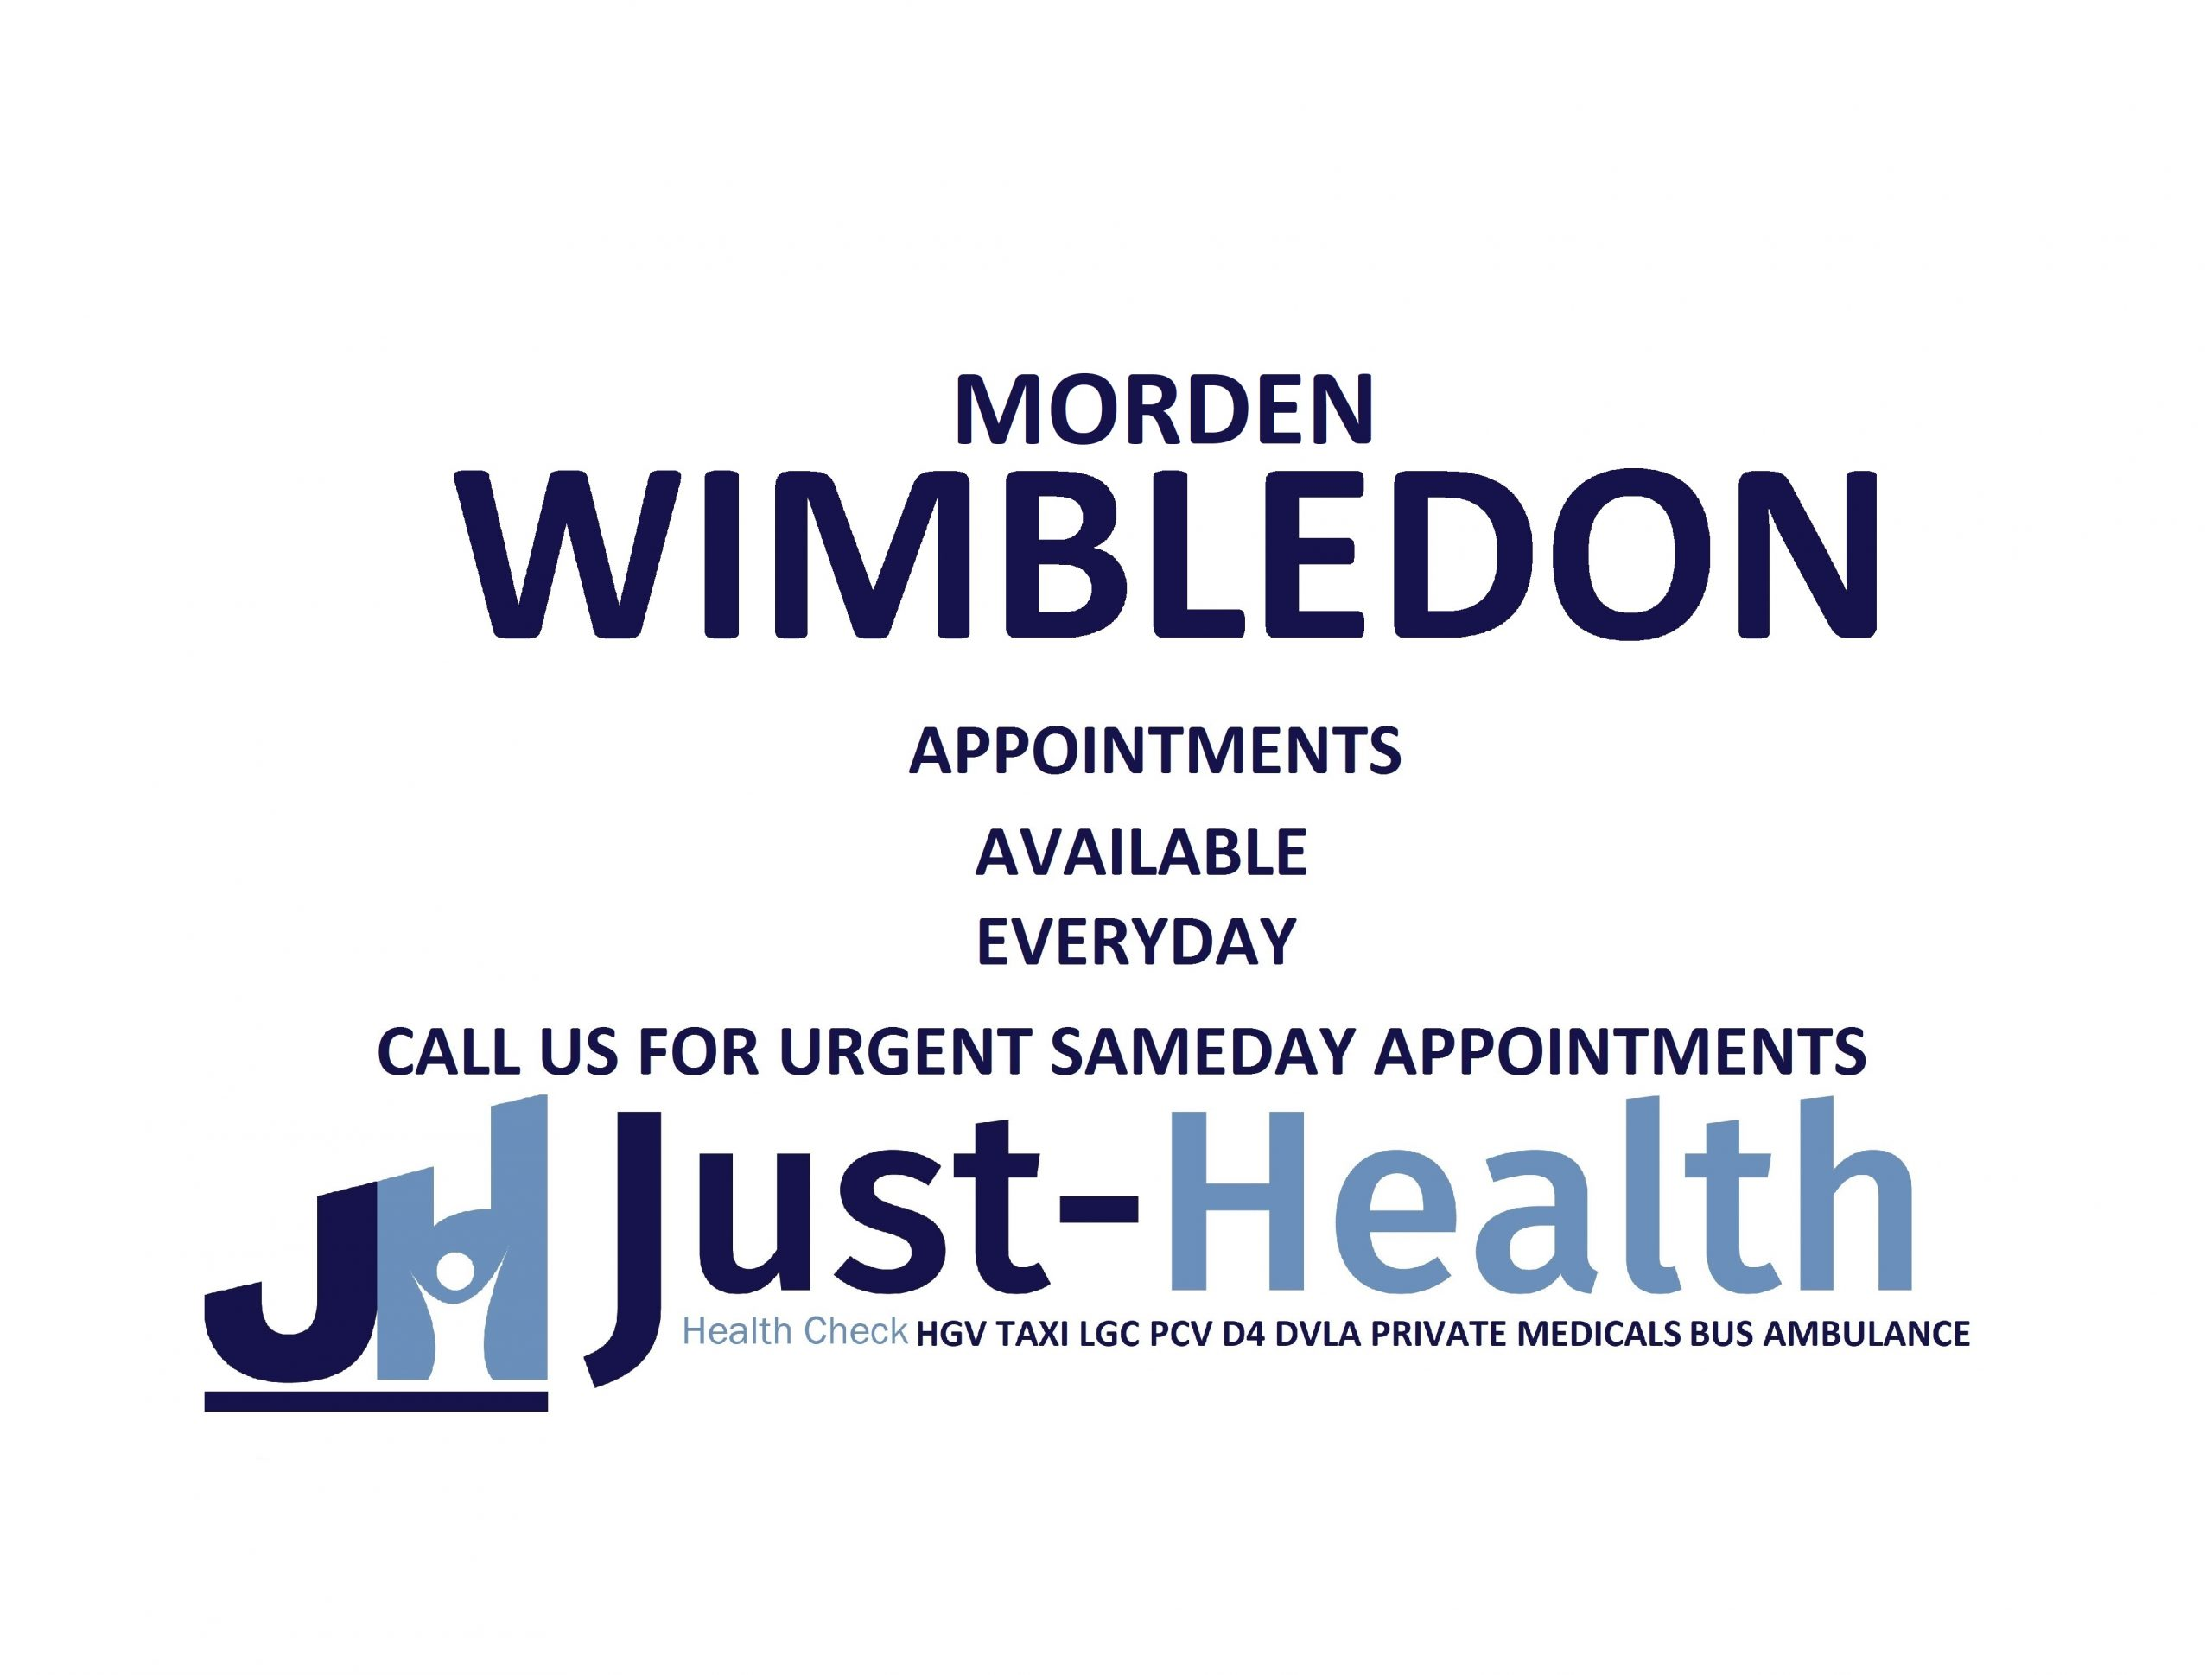 d4 HGV PSV LGV Taxi Pcv medical just health clinic wimbledon morden